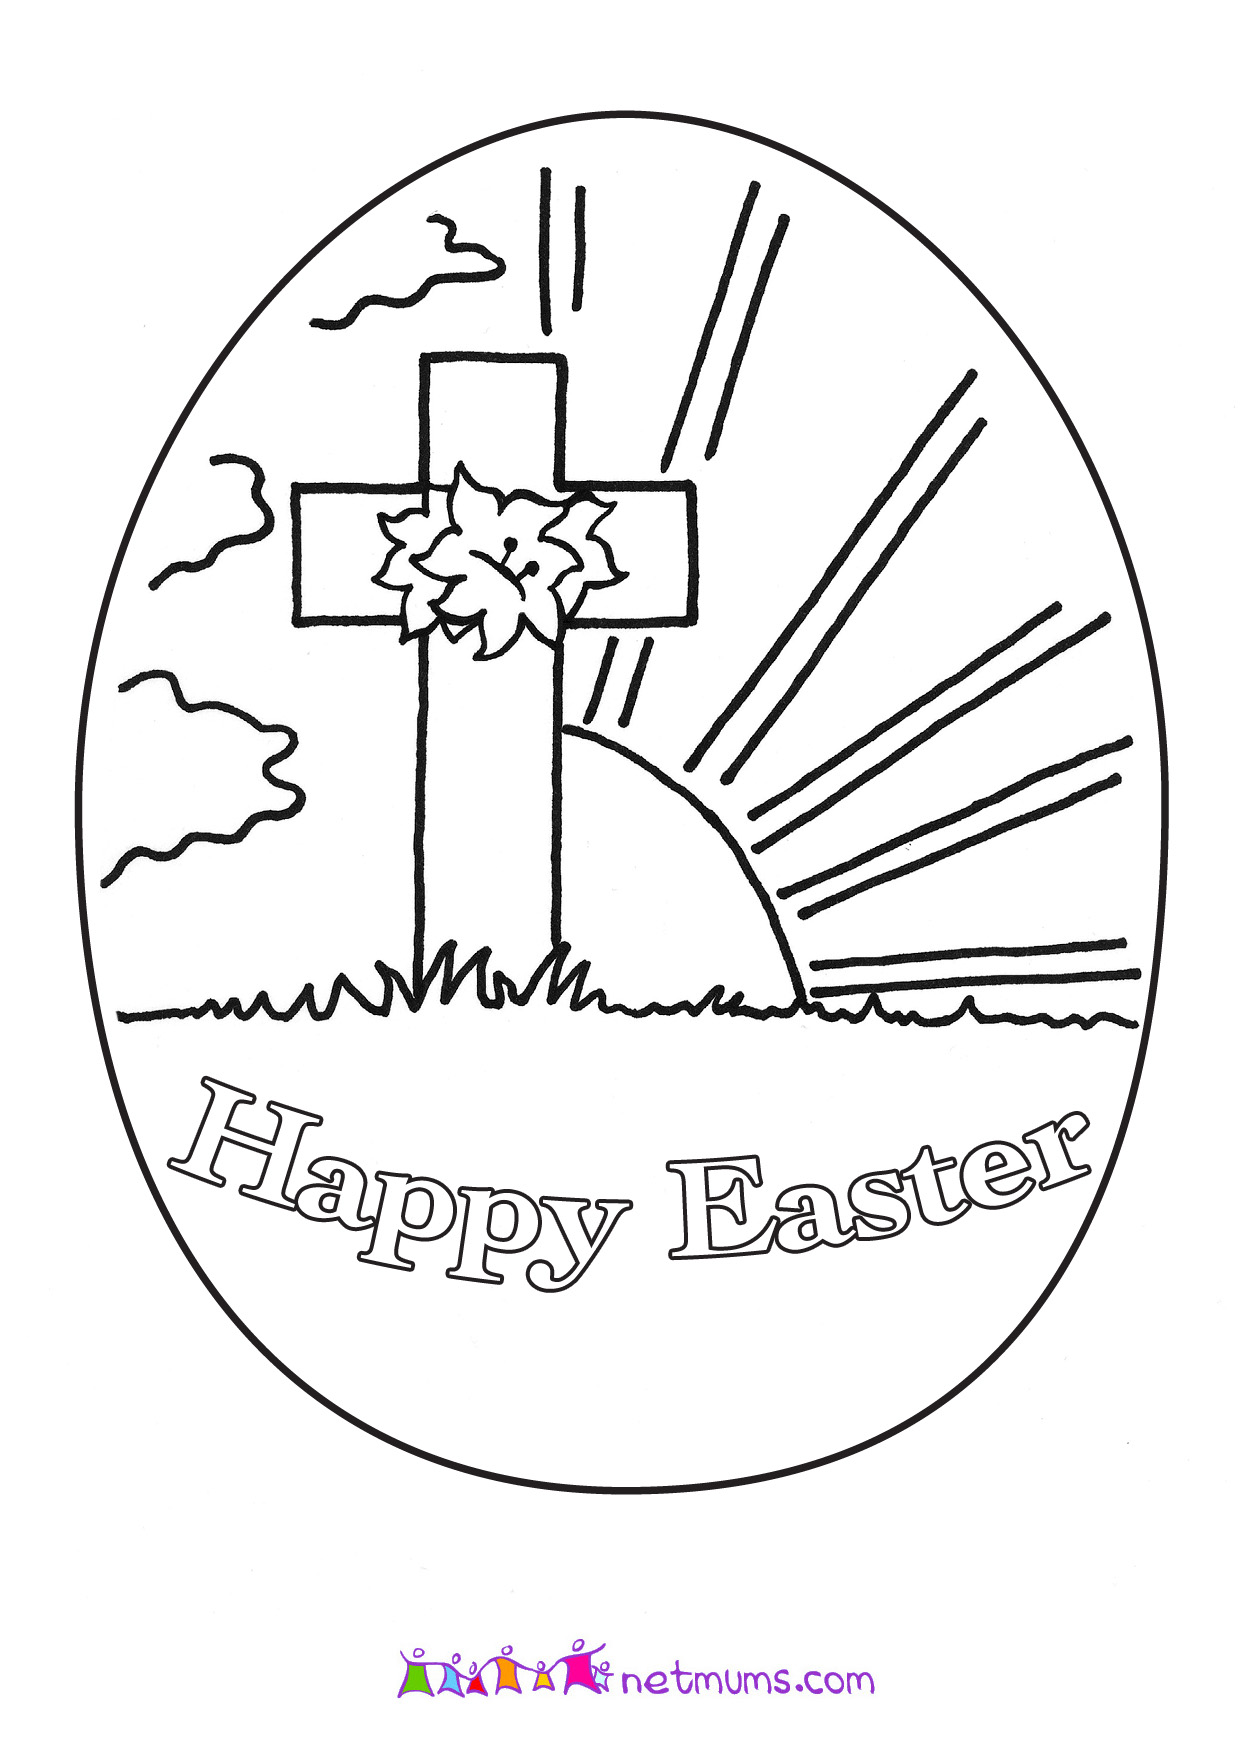 Free Printable Religious Easter Coloring Pages At